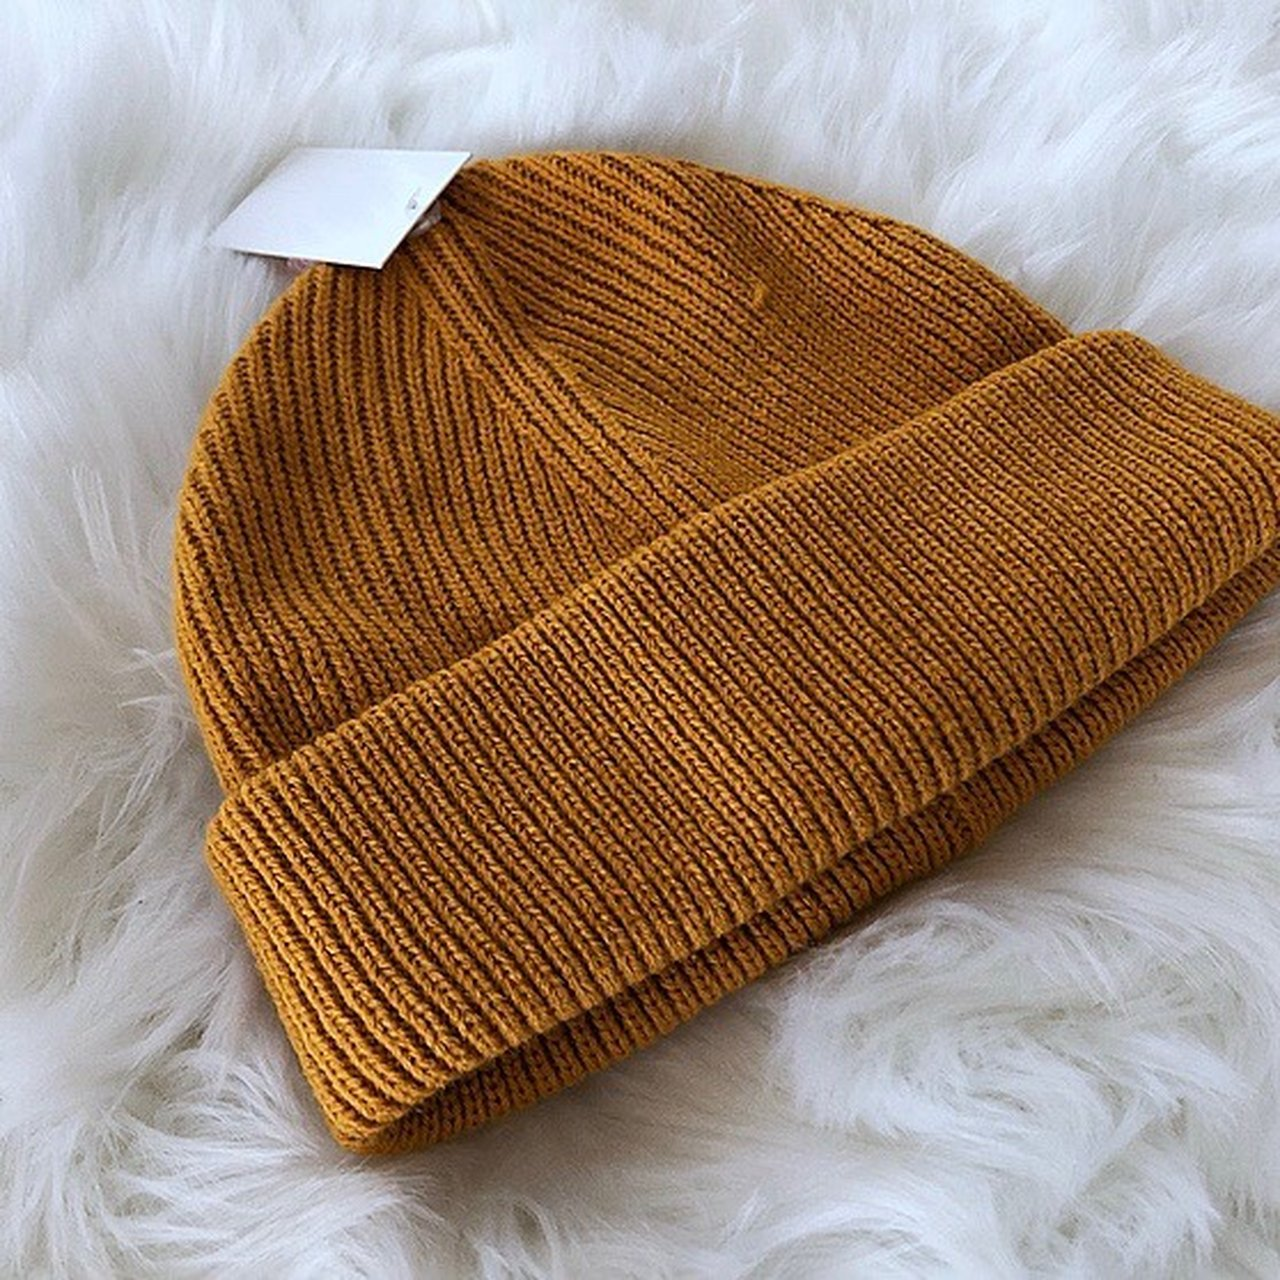 FOREVER 21 MUSTARD YELLOW BEANIE A ribbed mustard yellow in - Depop 6c377e6257a7